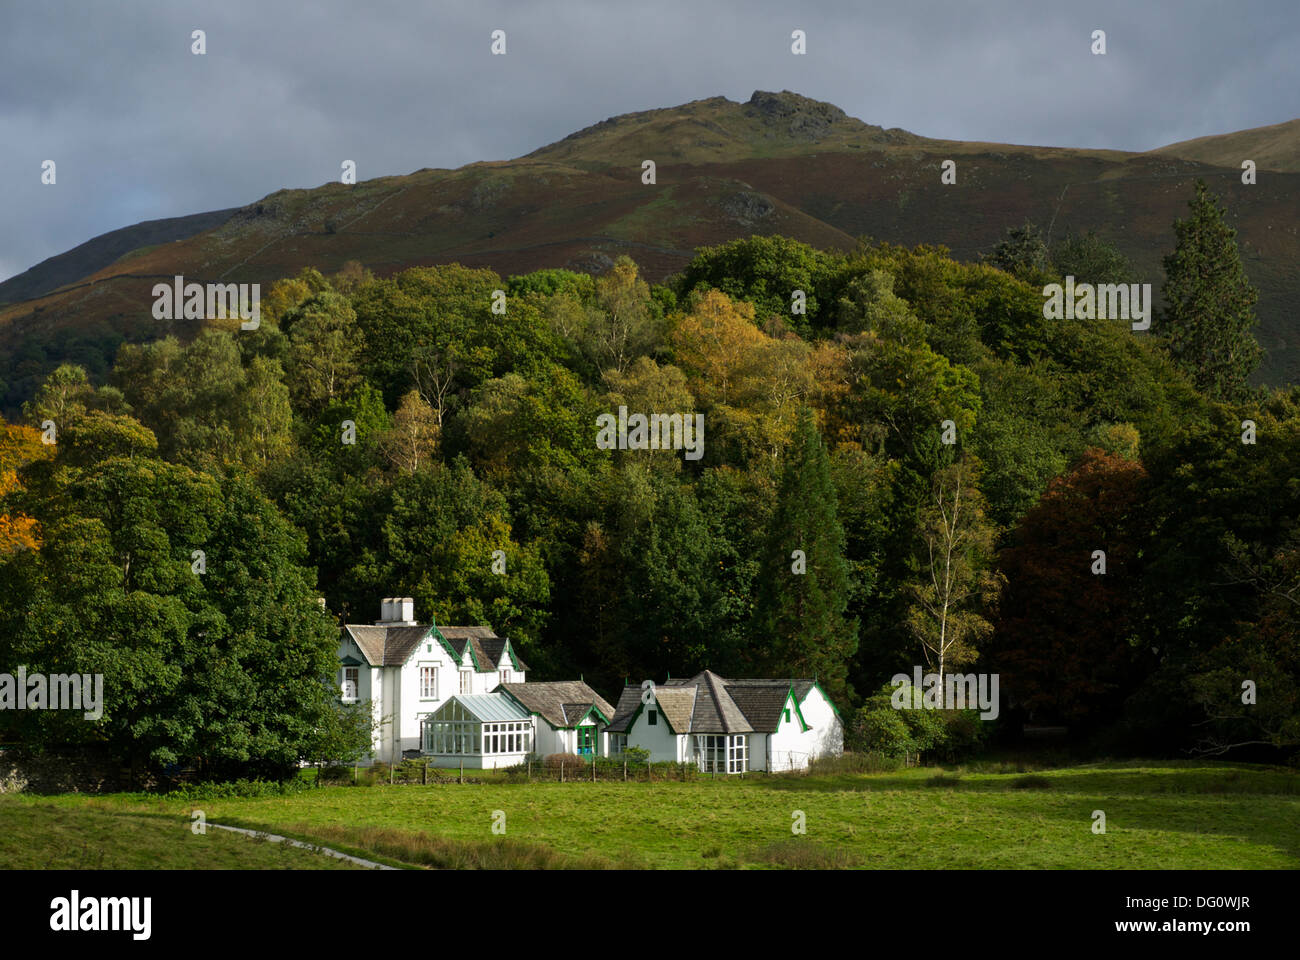 Glenthorne Quaker Gästehaus, Easedale Road, Grasmere, Nationalpark Lake District, Cumbria, England UK Stockbild